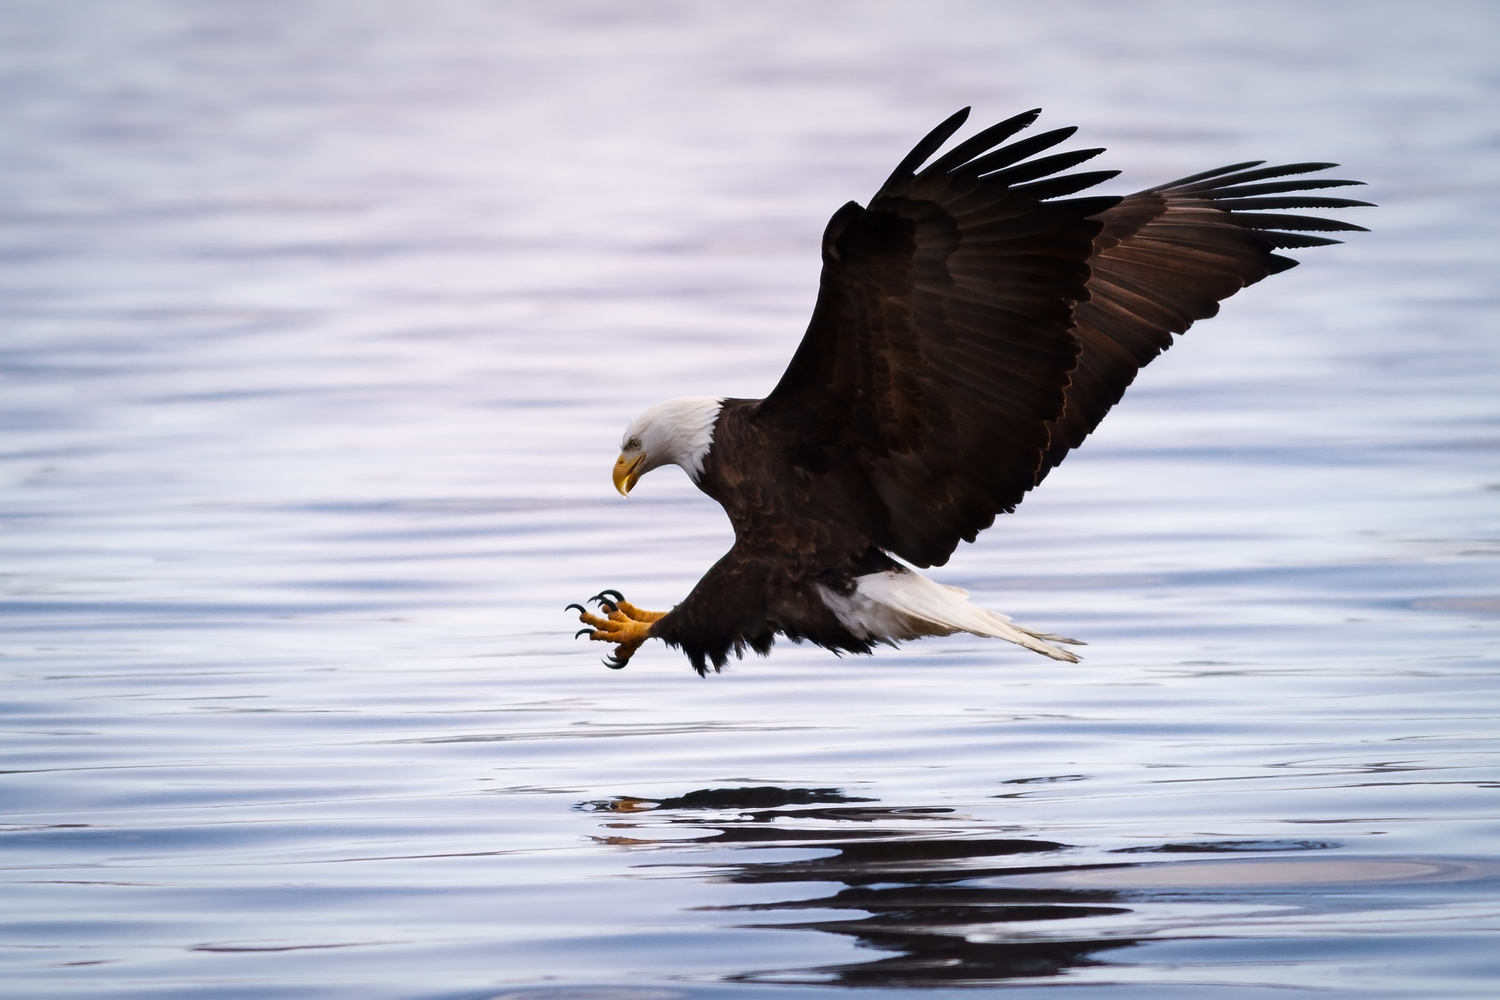 The Eagle, an American Tresure by Troy Marcy